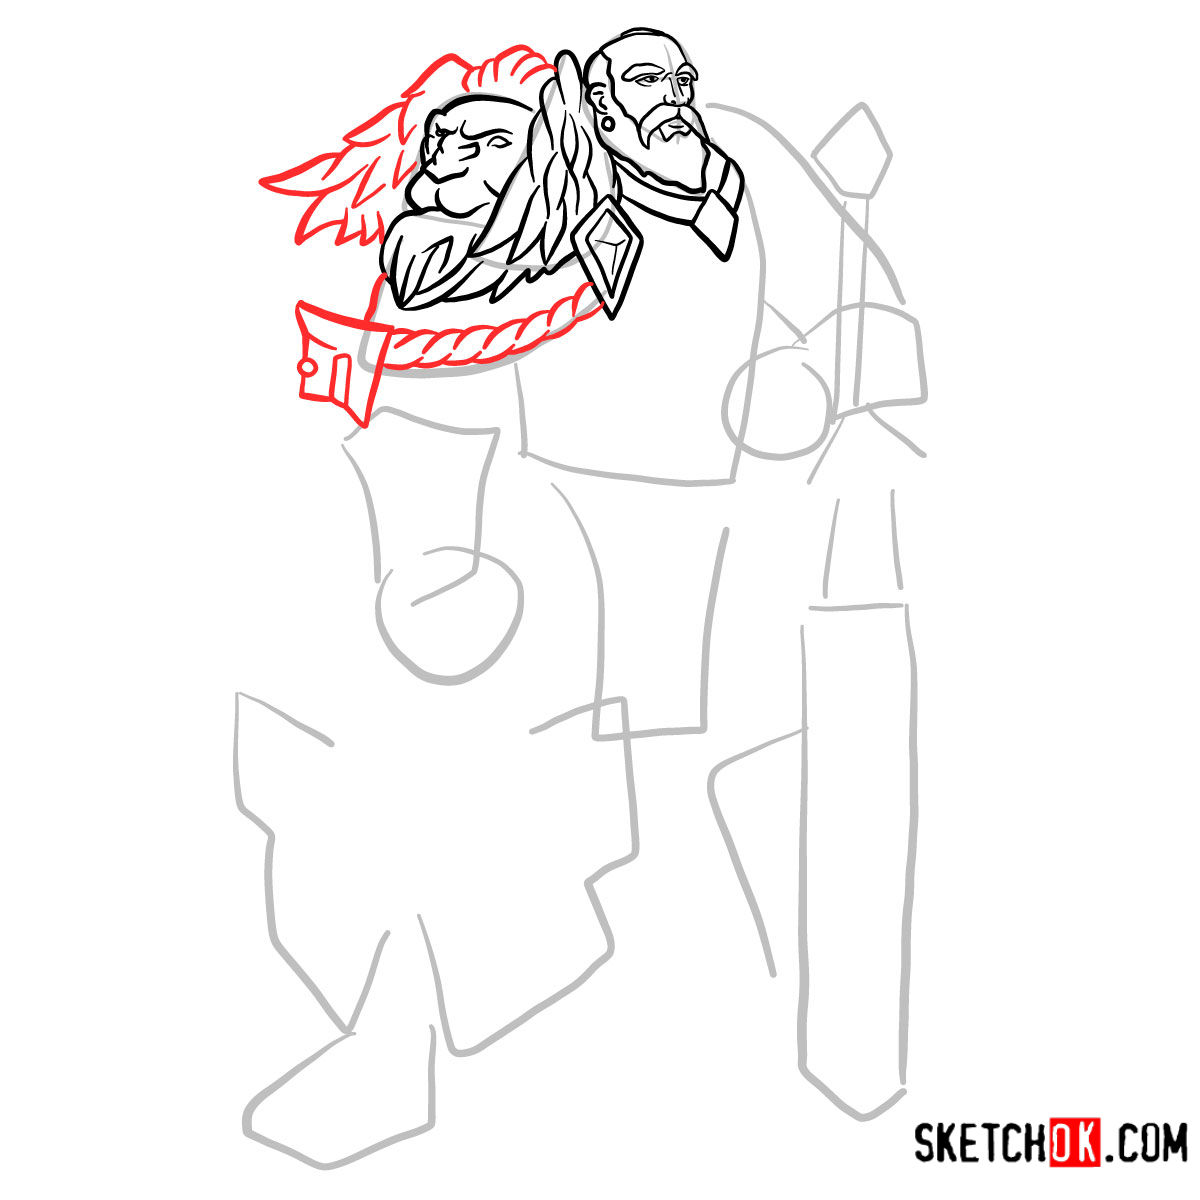 How to draw Lord Anduin Lothar | World of Warcraft - step 07